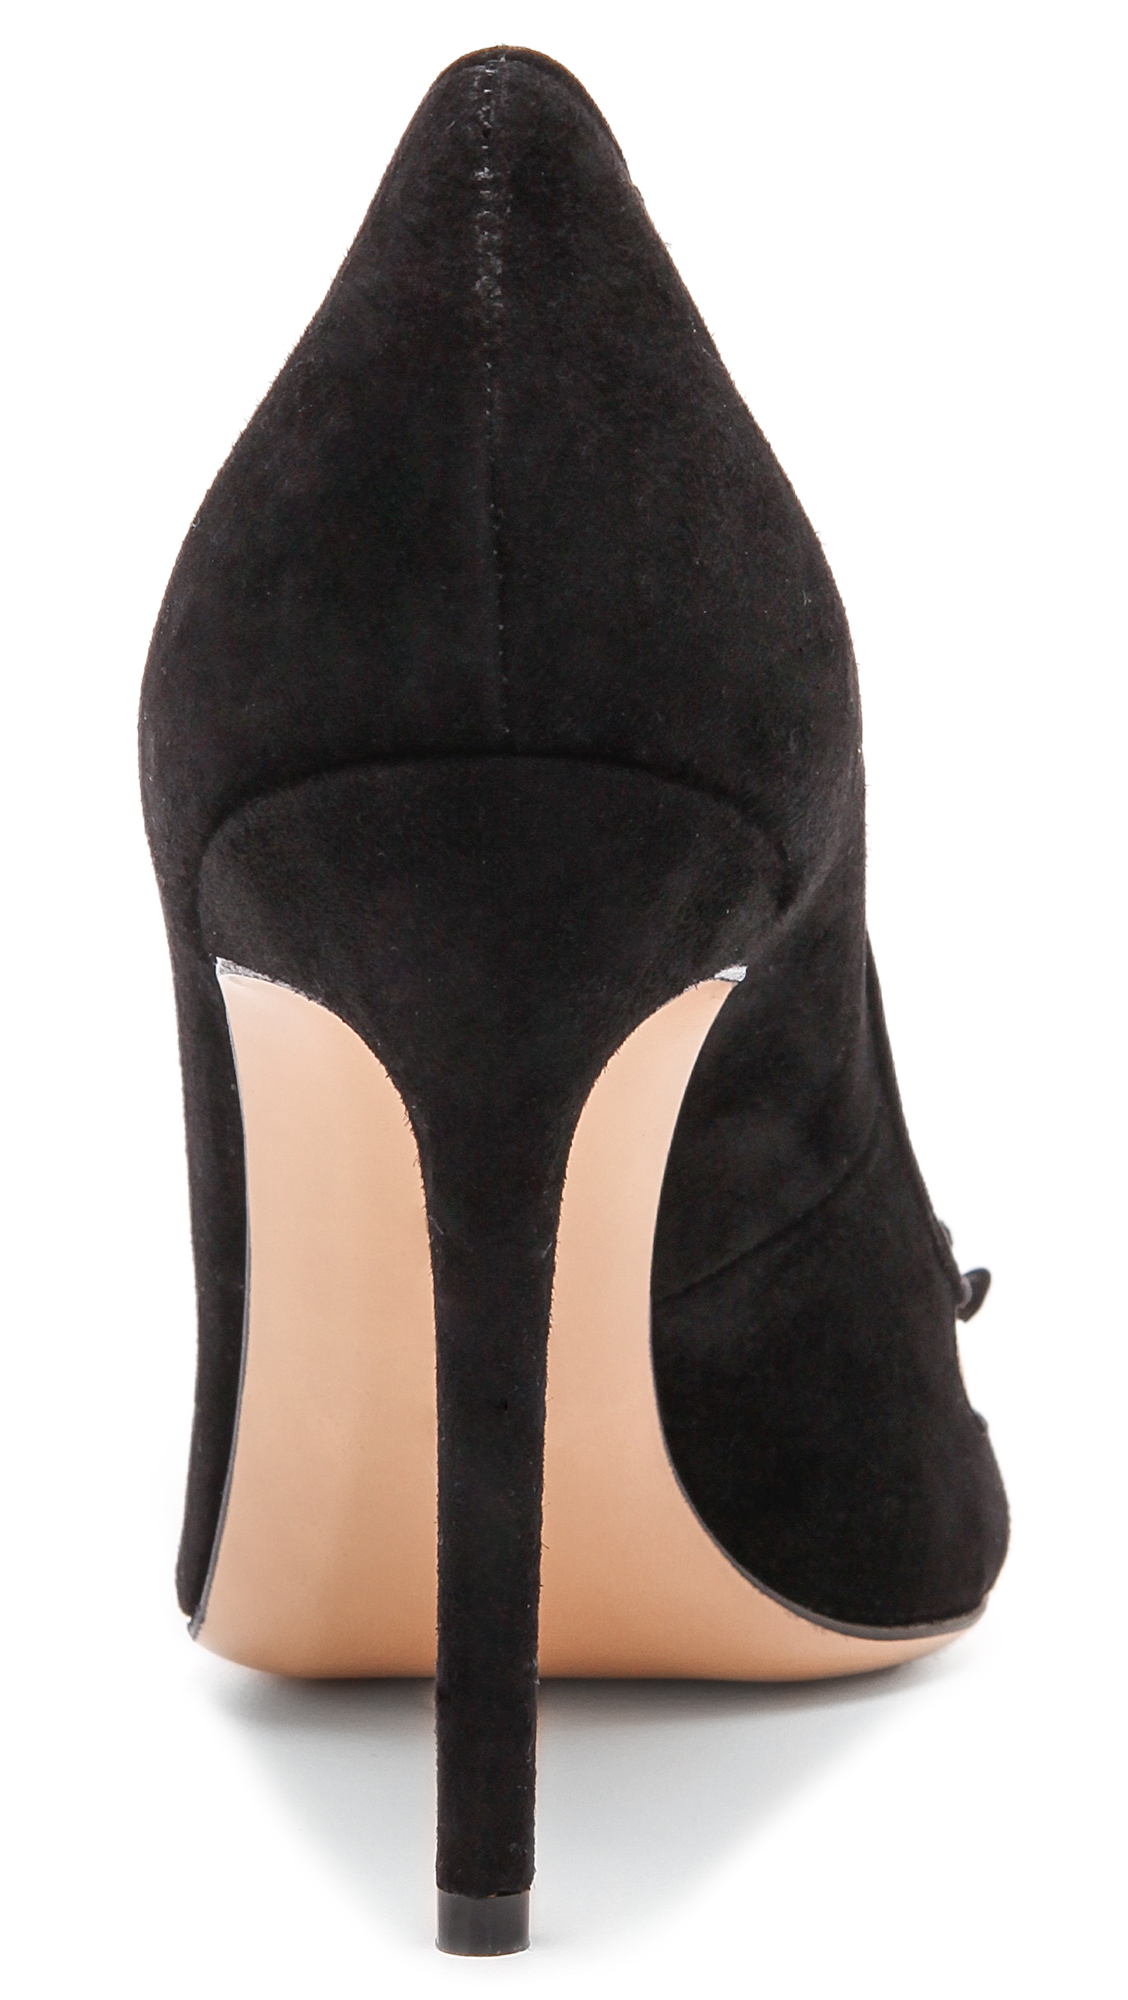 castana women Shop for jessica simpson castana women pointed toe canvas gold heels free shipping on orders over $45 at overstockcom - your online shoes outlet store get 5% in rewards with club o - 18029012.